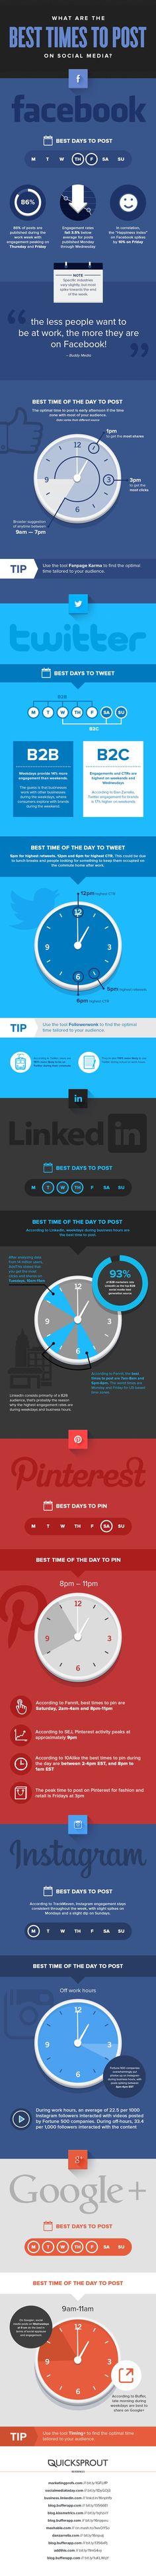 What Are The Best Times to Post on Social Media Profiles - for small businesses…